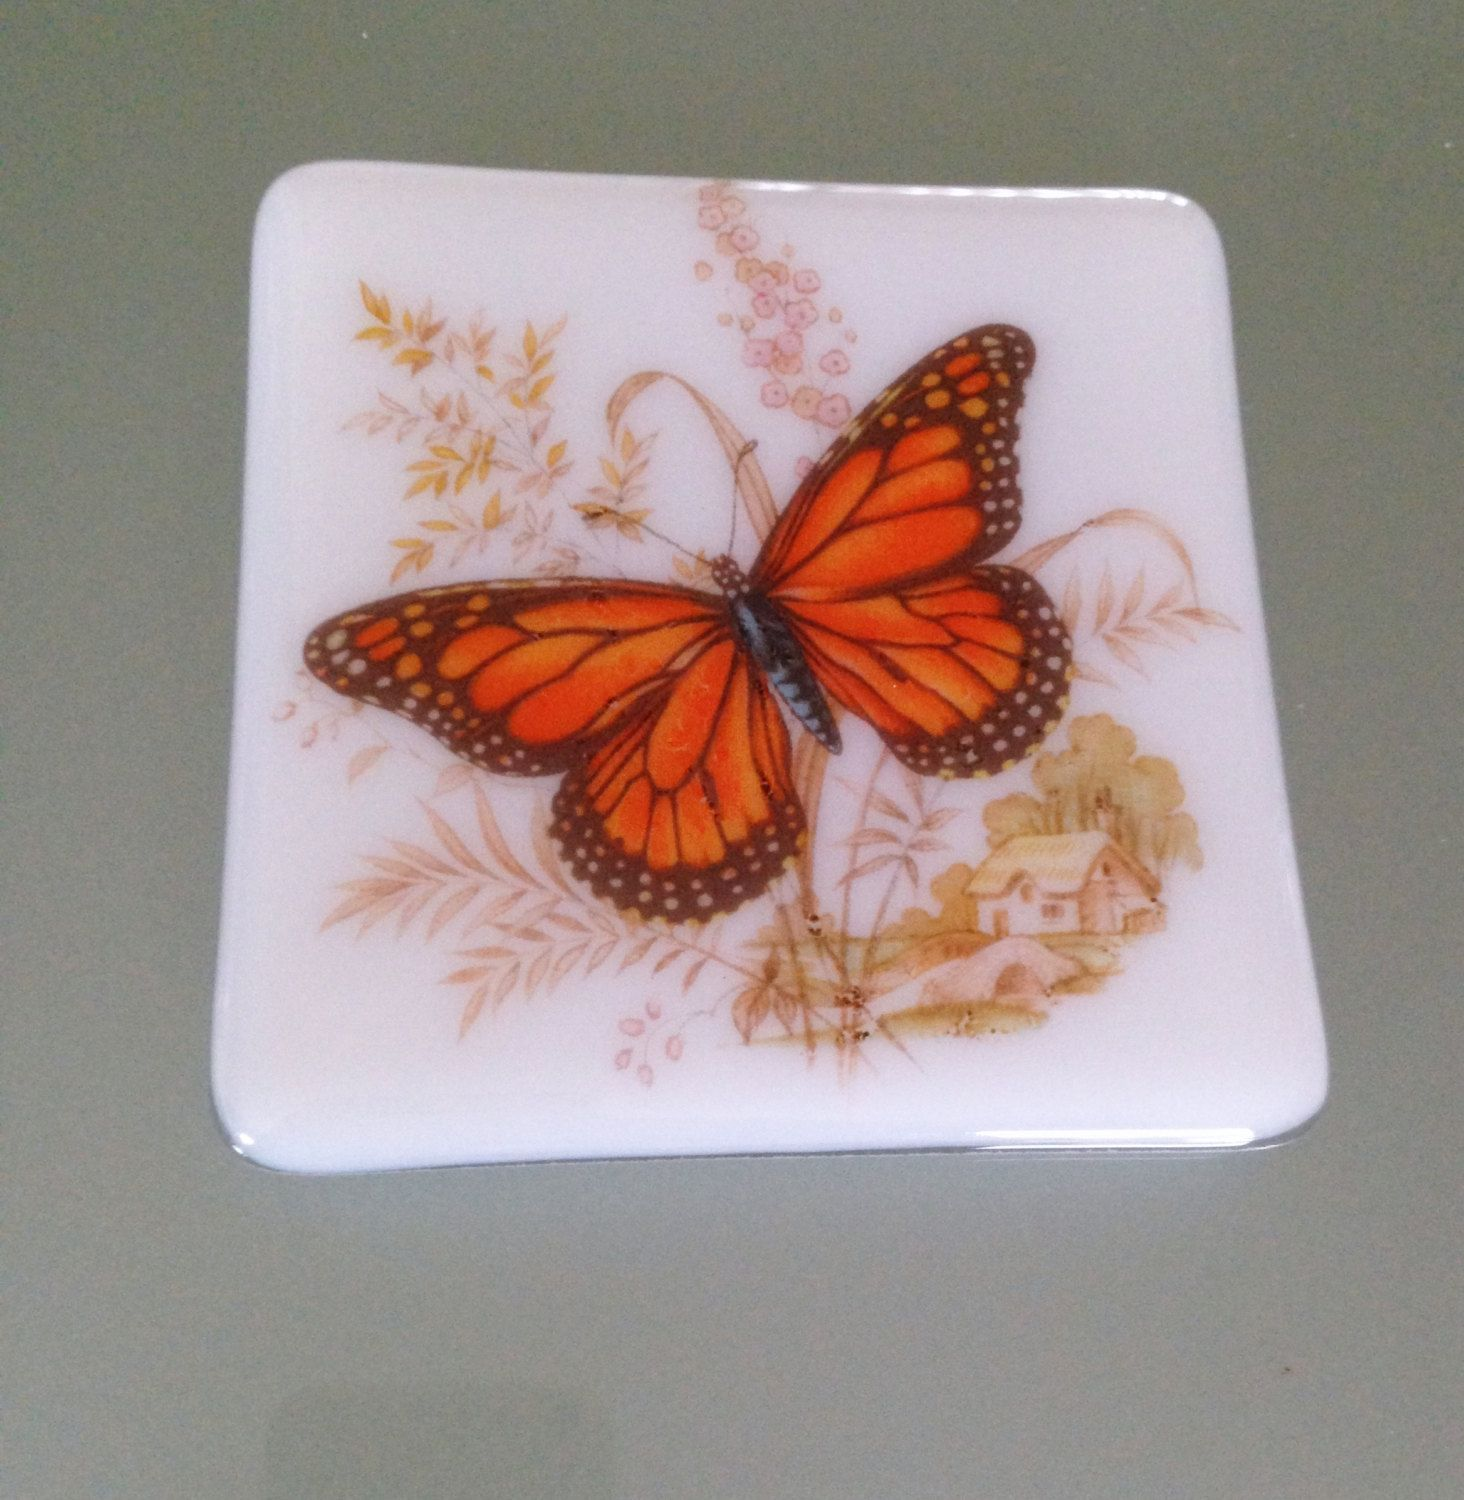 Wedding anniversary decorations at home  Butterfly Gift Glass Coaster Set Anniversary Gift for Her Unique